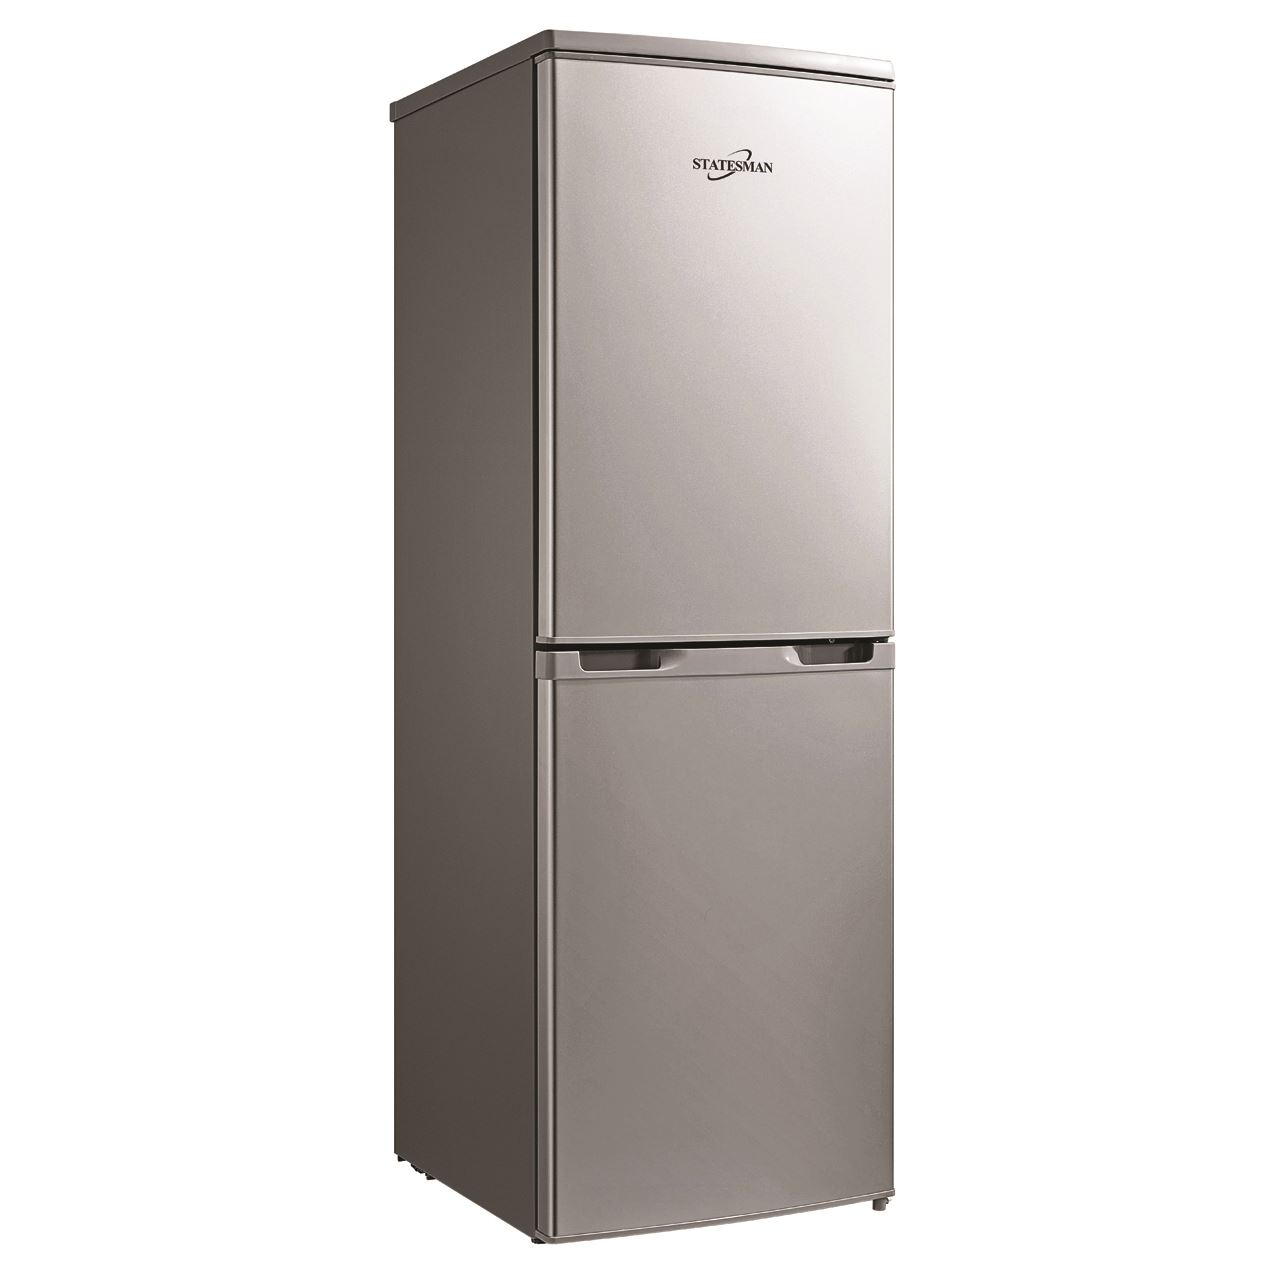 Statesman F1974aps Fridge Freezer Direct Discounts